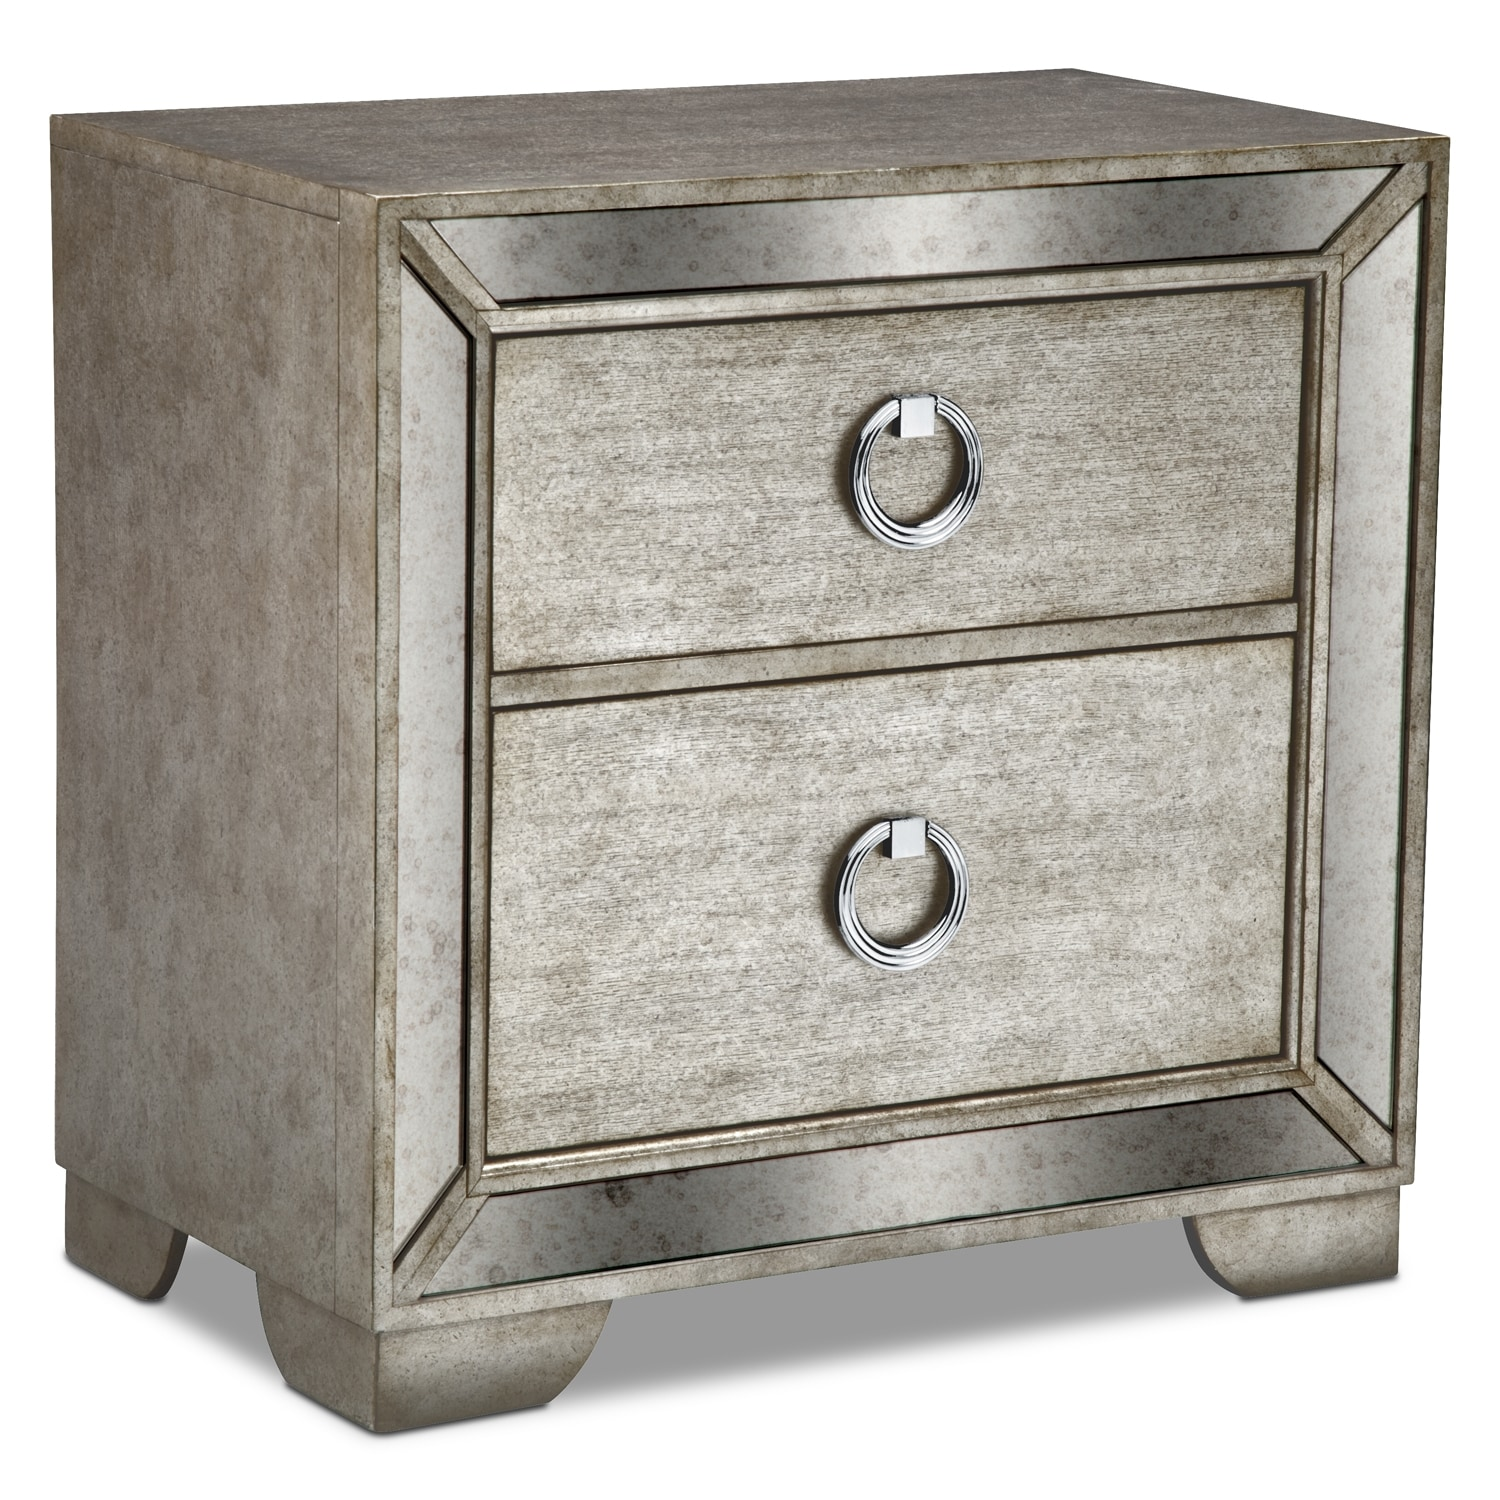 Bedroom Furniture - Angelina Nightstand - Metallic